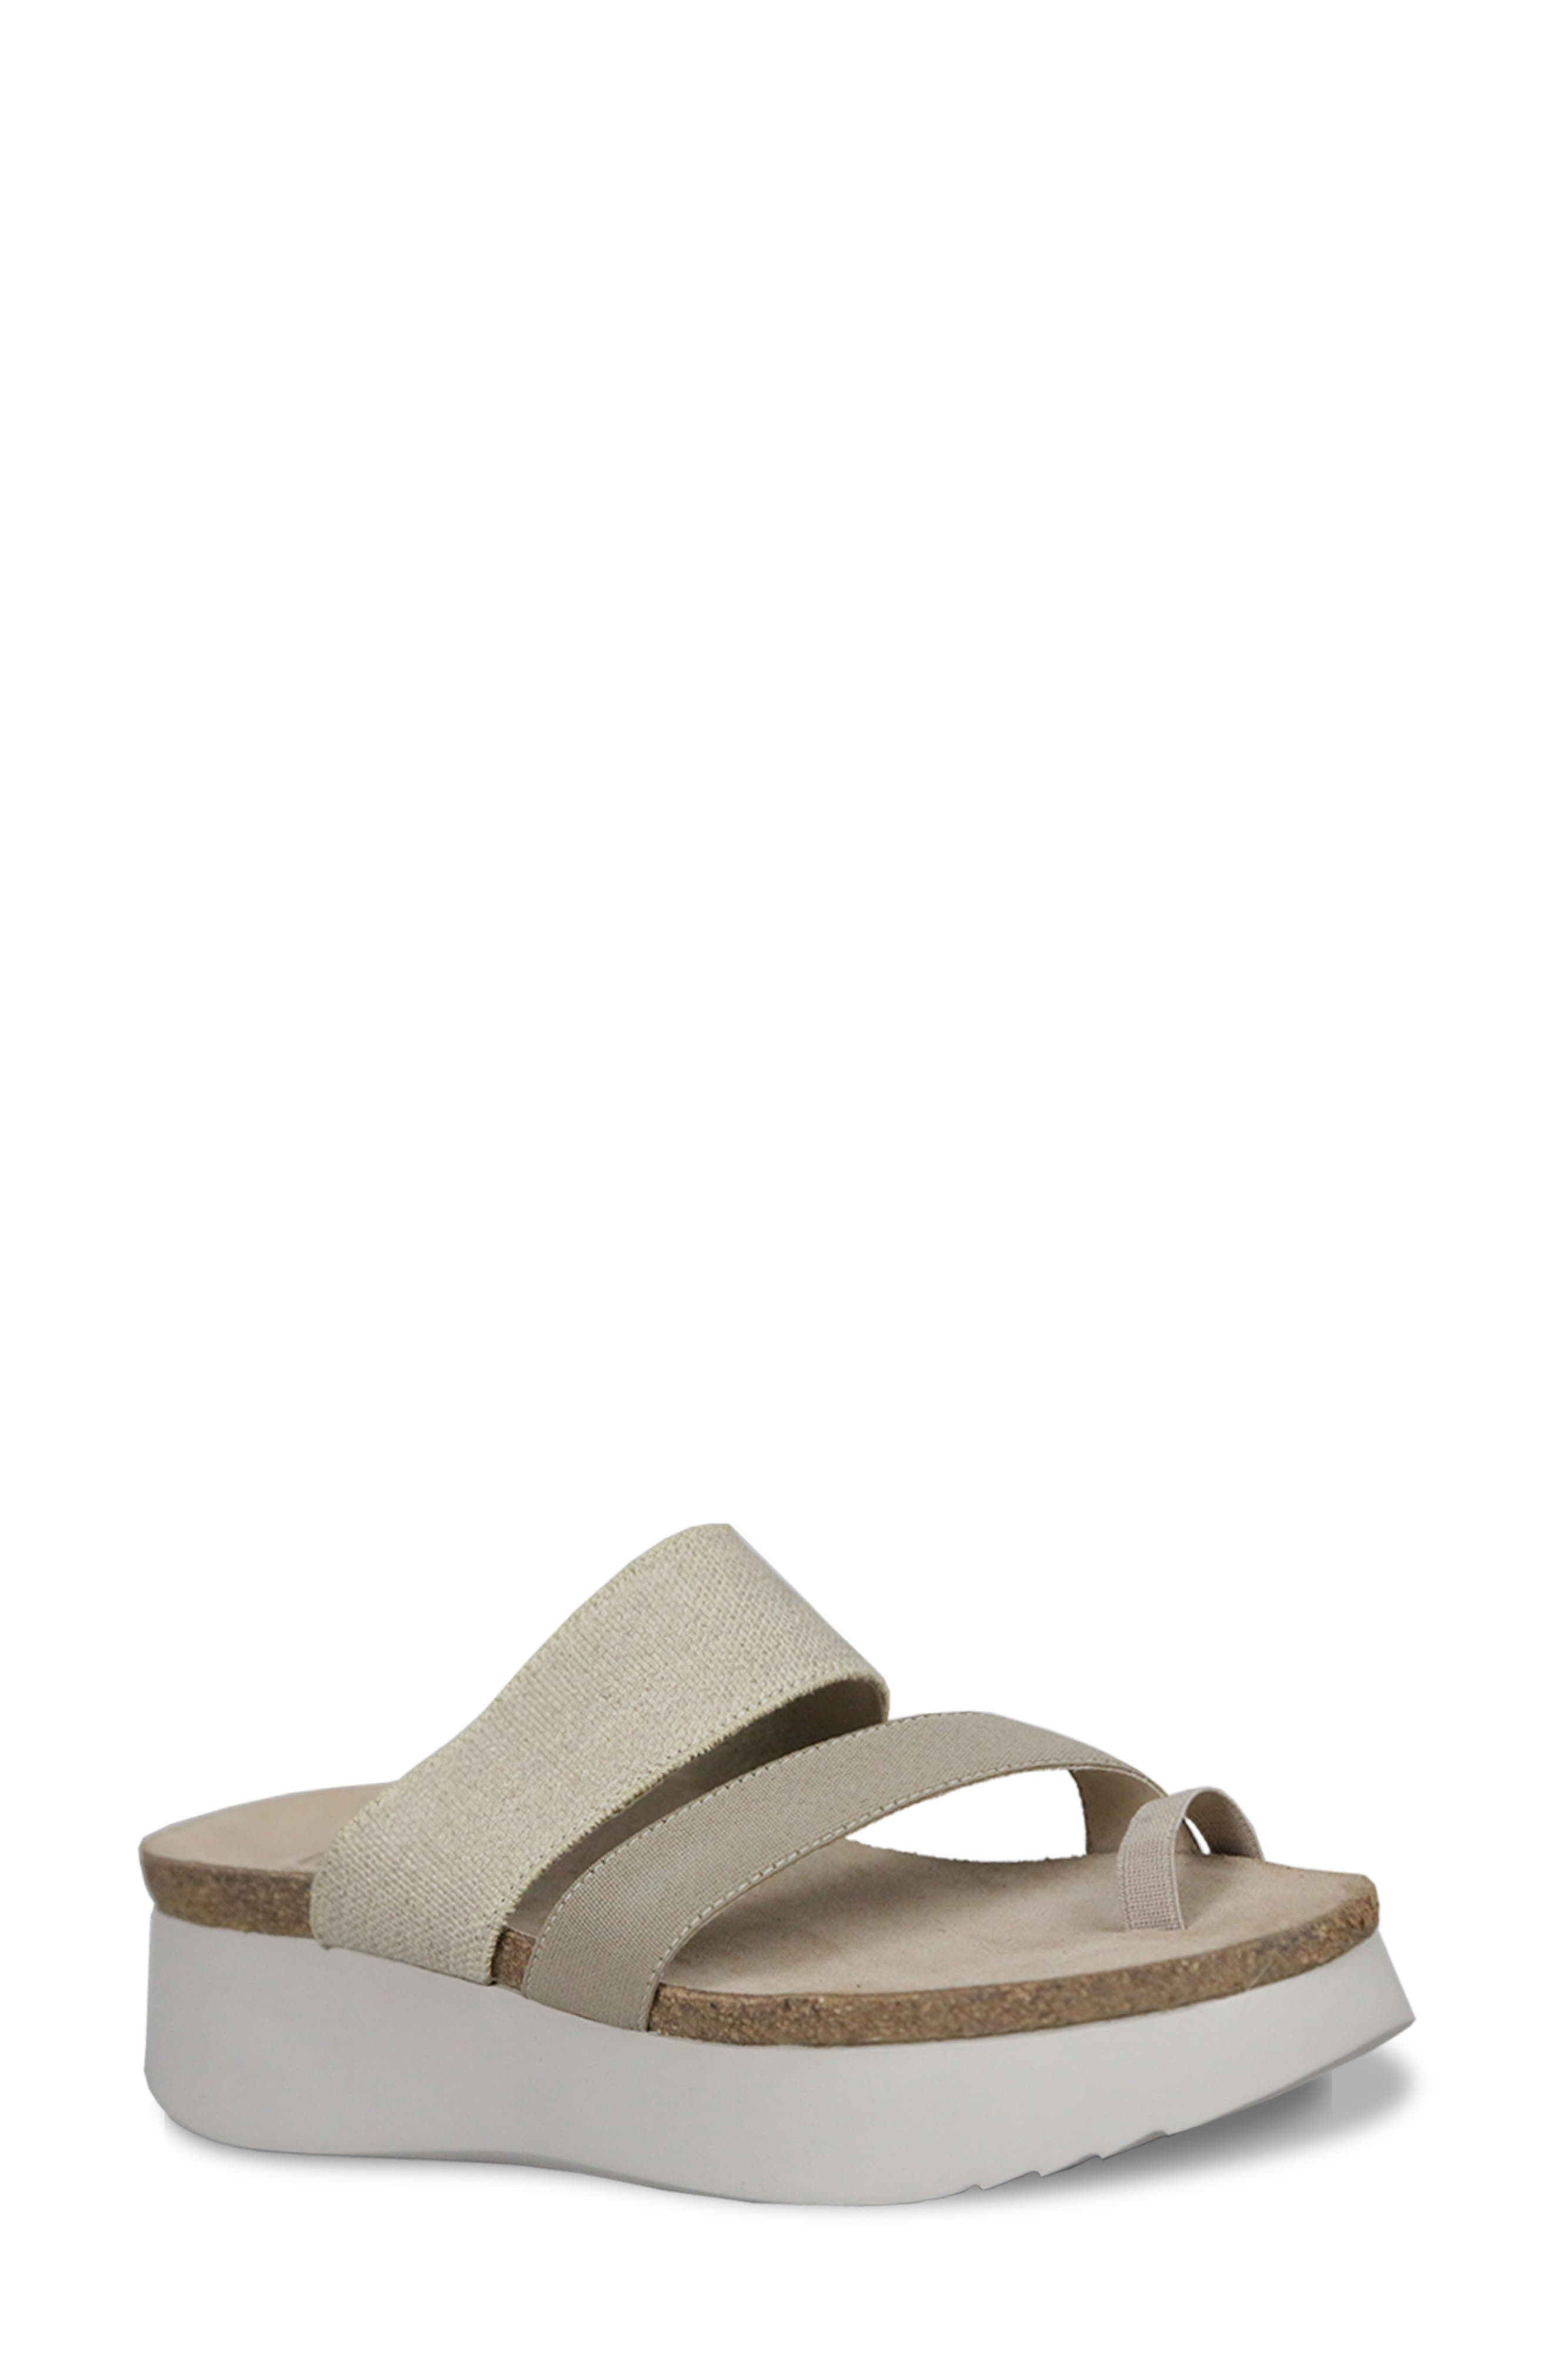 Toe-loop styling enhances the modern appeal of a comfortable and stylish platform sandal. Style Name: Munro Aries Ii Platform Sandal (Women). Style Number: 6016738 1. Available in stores.